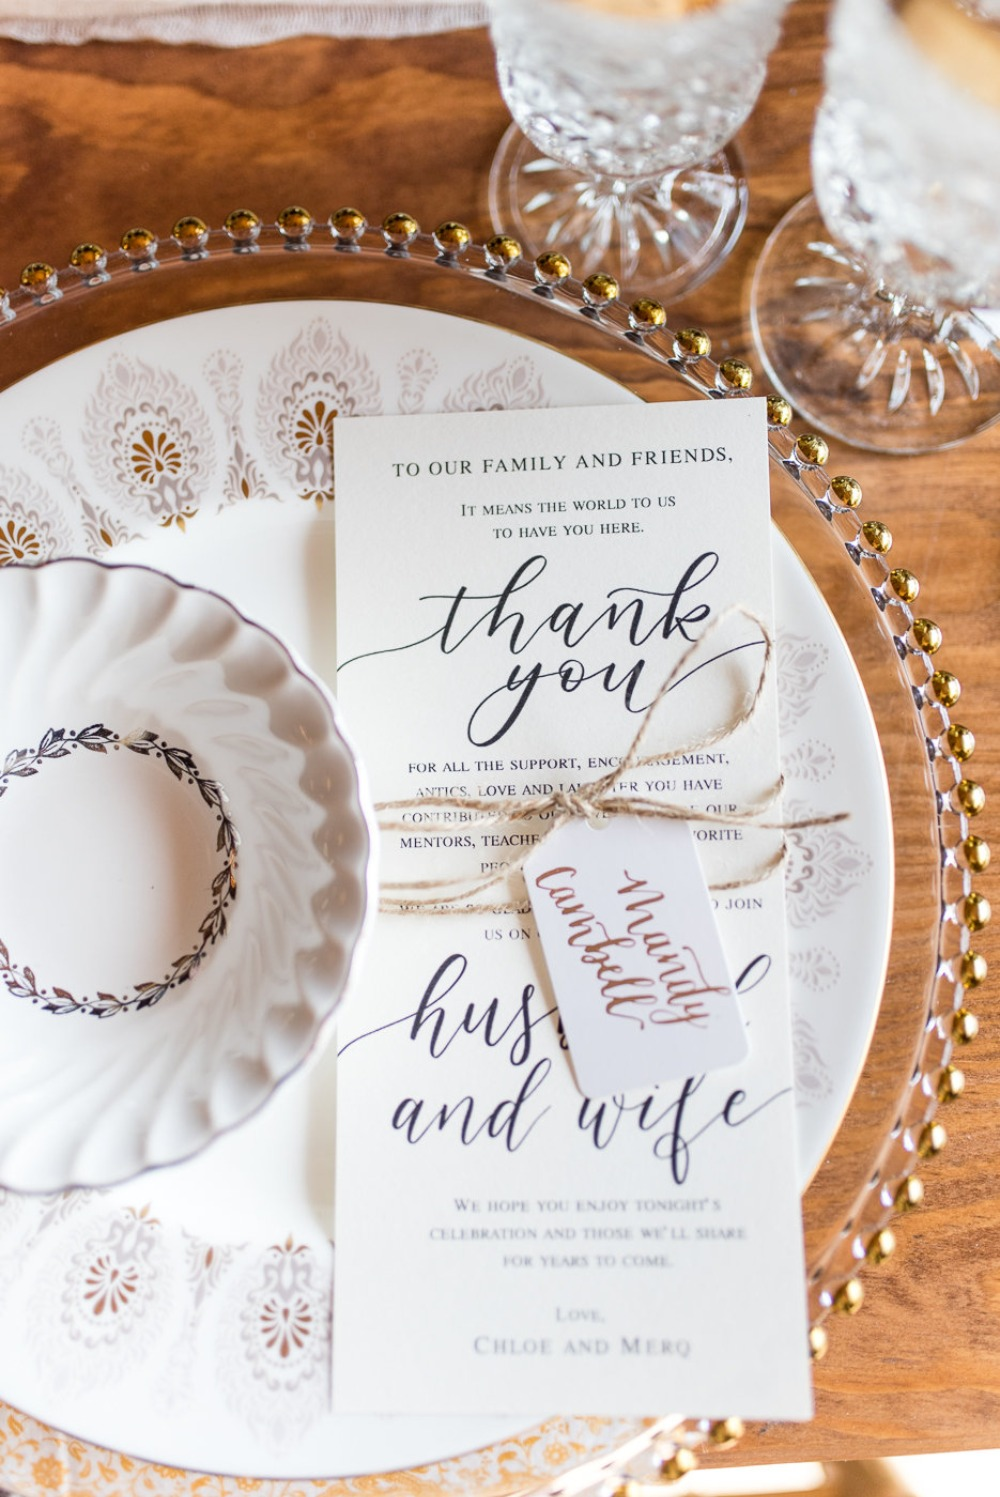 sweet thank you note from the wedding couple